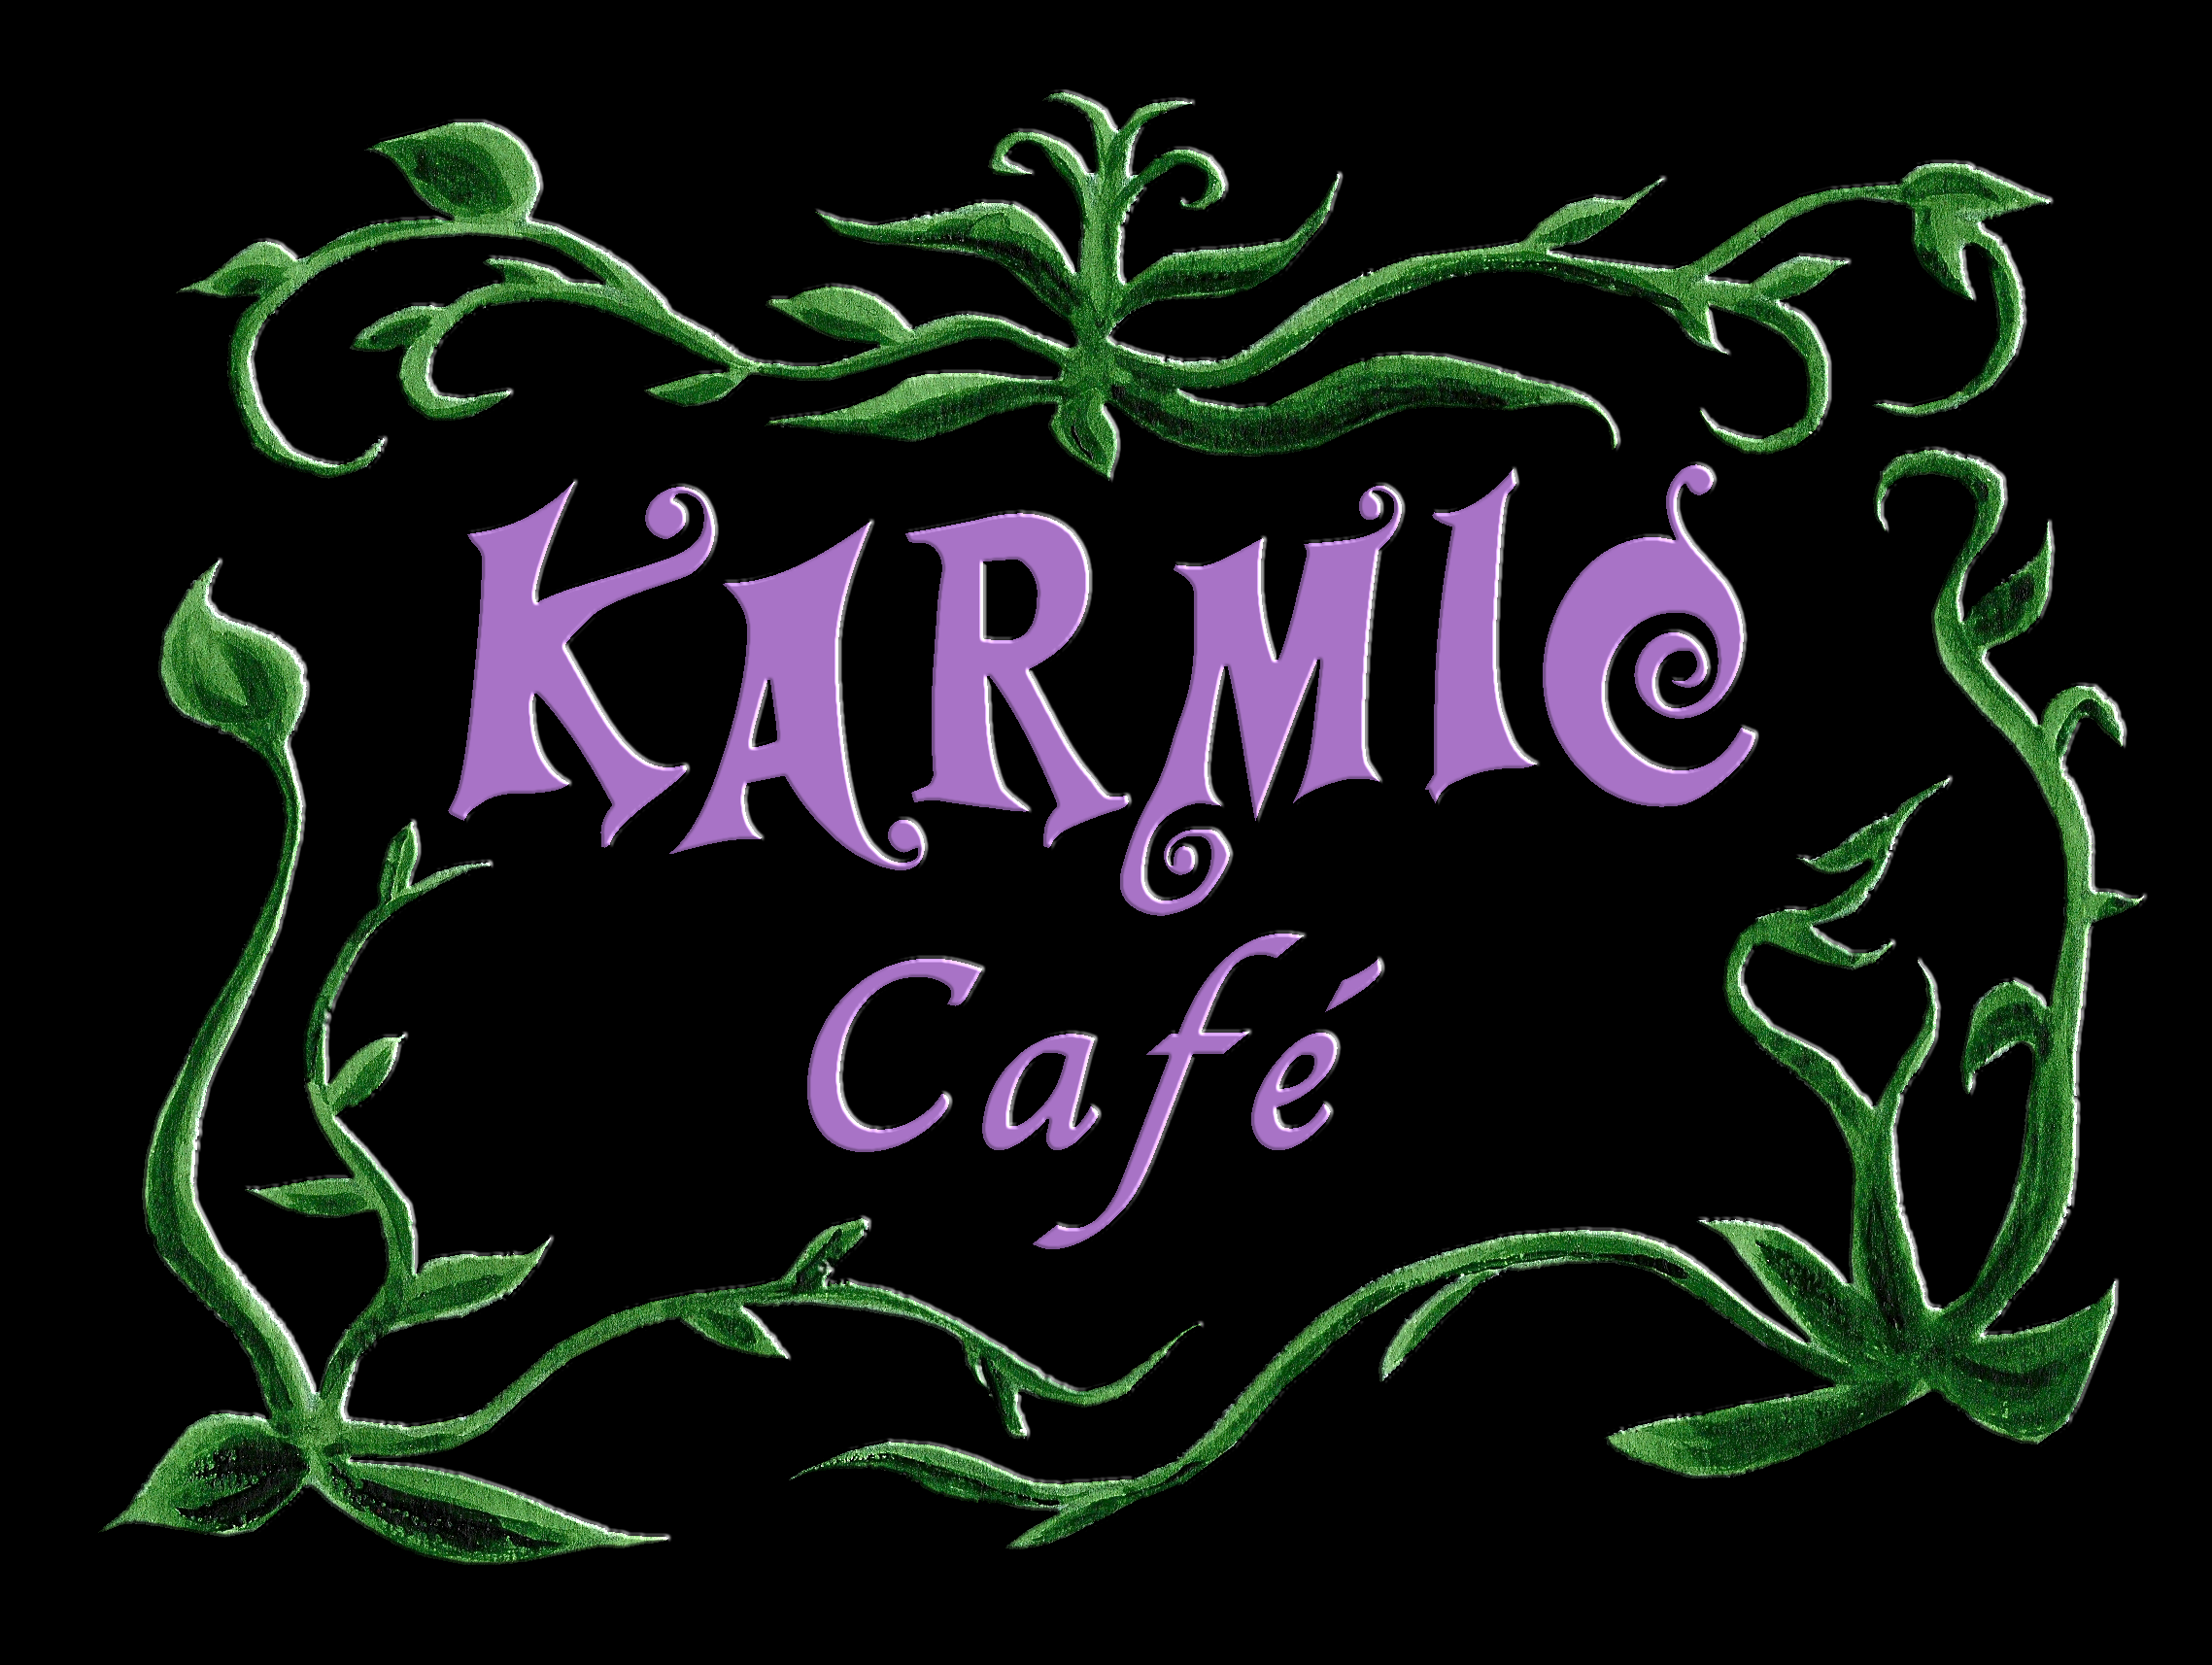 Karmic_Cafe_Black2